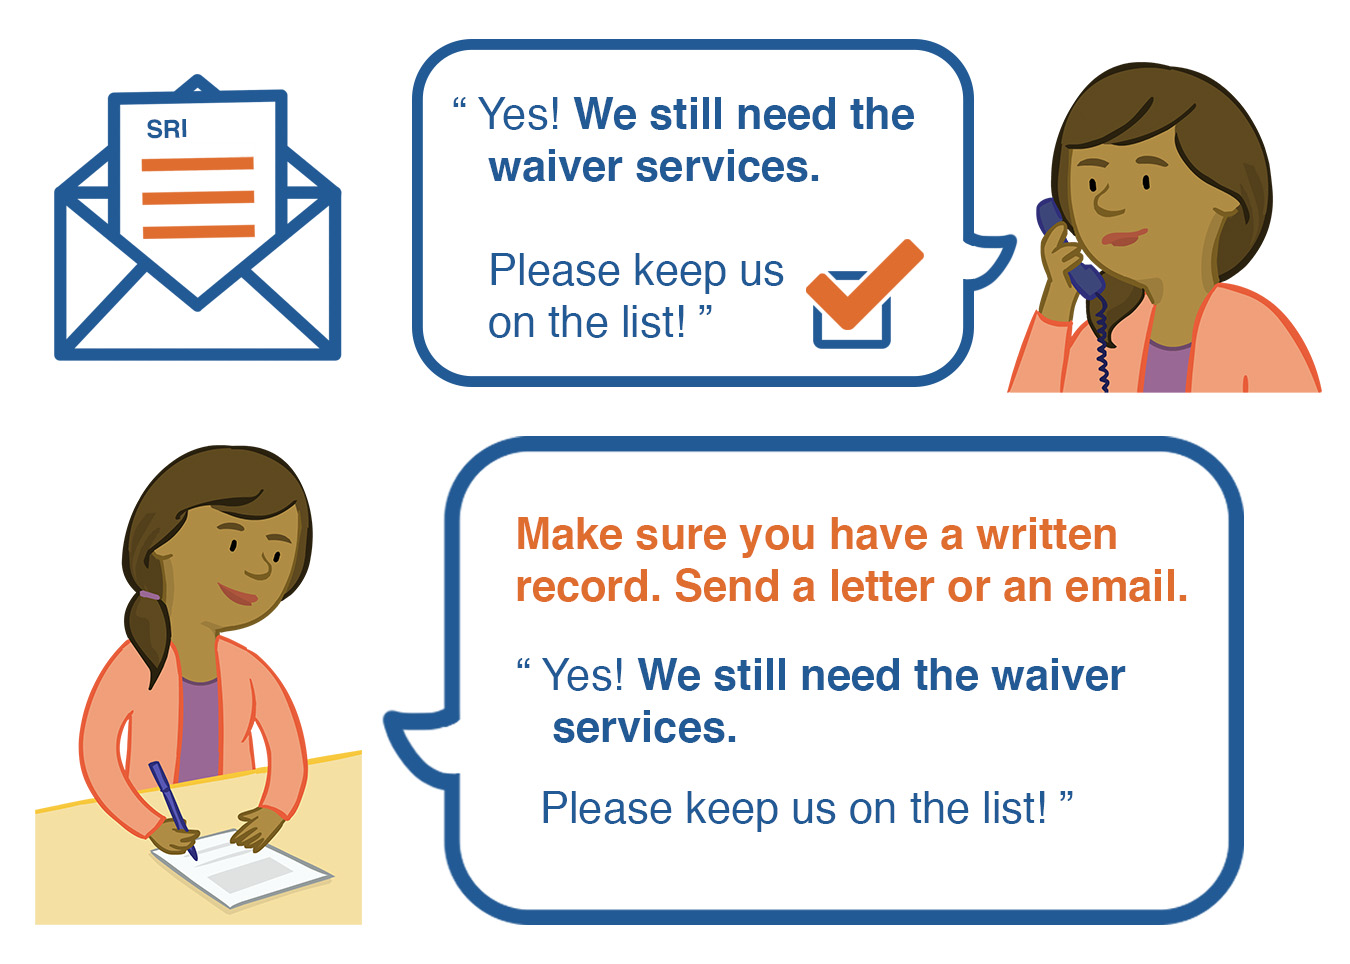 You will get a letter every year to confirm that you still want services. Keep an eye out for this - you will need to respond. Make sure to have a written record. Send a letter or email. Respond 'Yes! We still need waiver services. Keep us on the list'